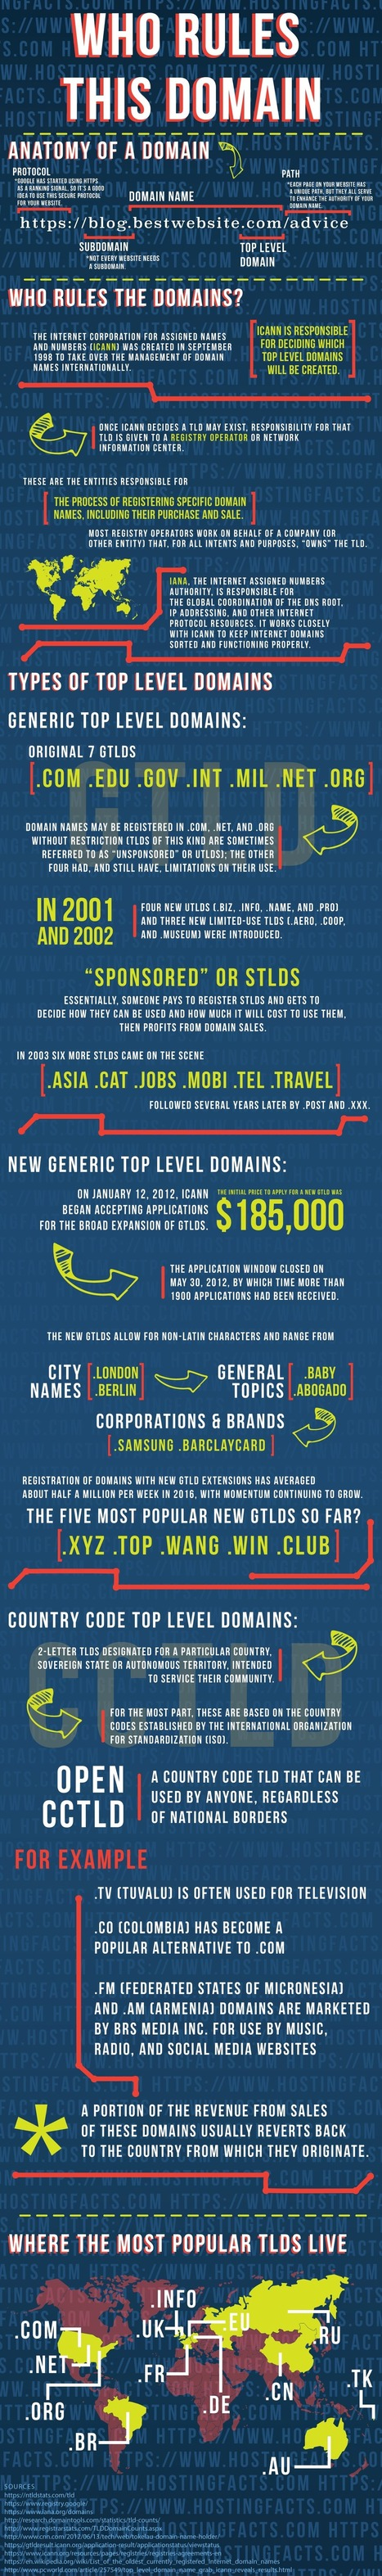 Why a Website Domain is a Marketing Tool [Infographic] | Content Marketing & Content Strategy | Scoop.it